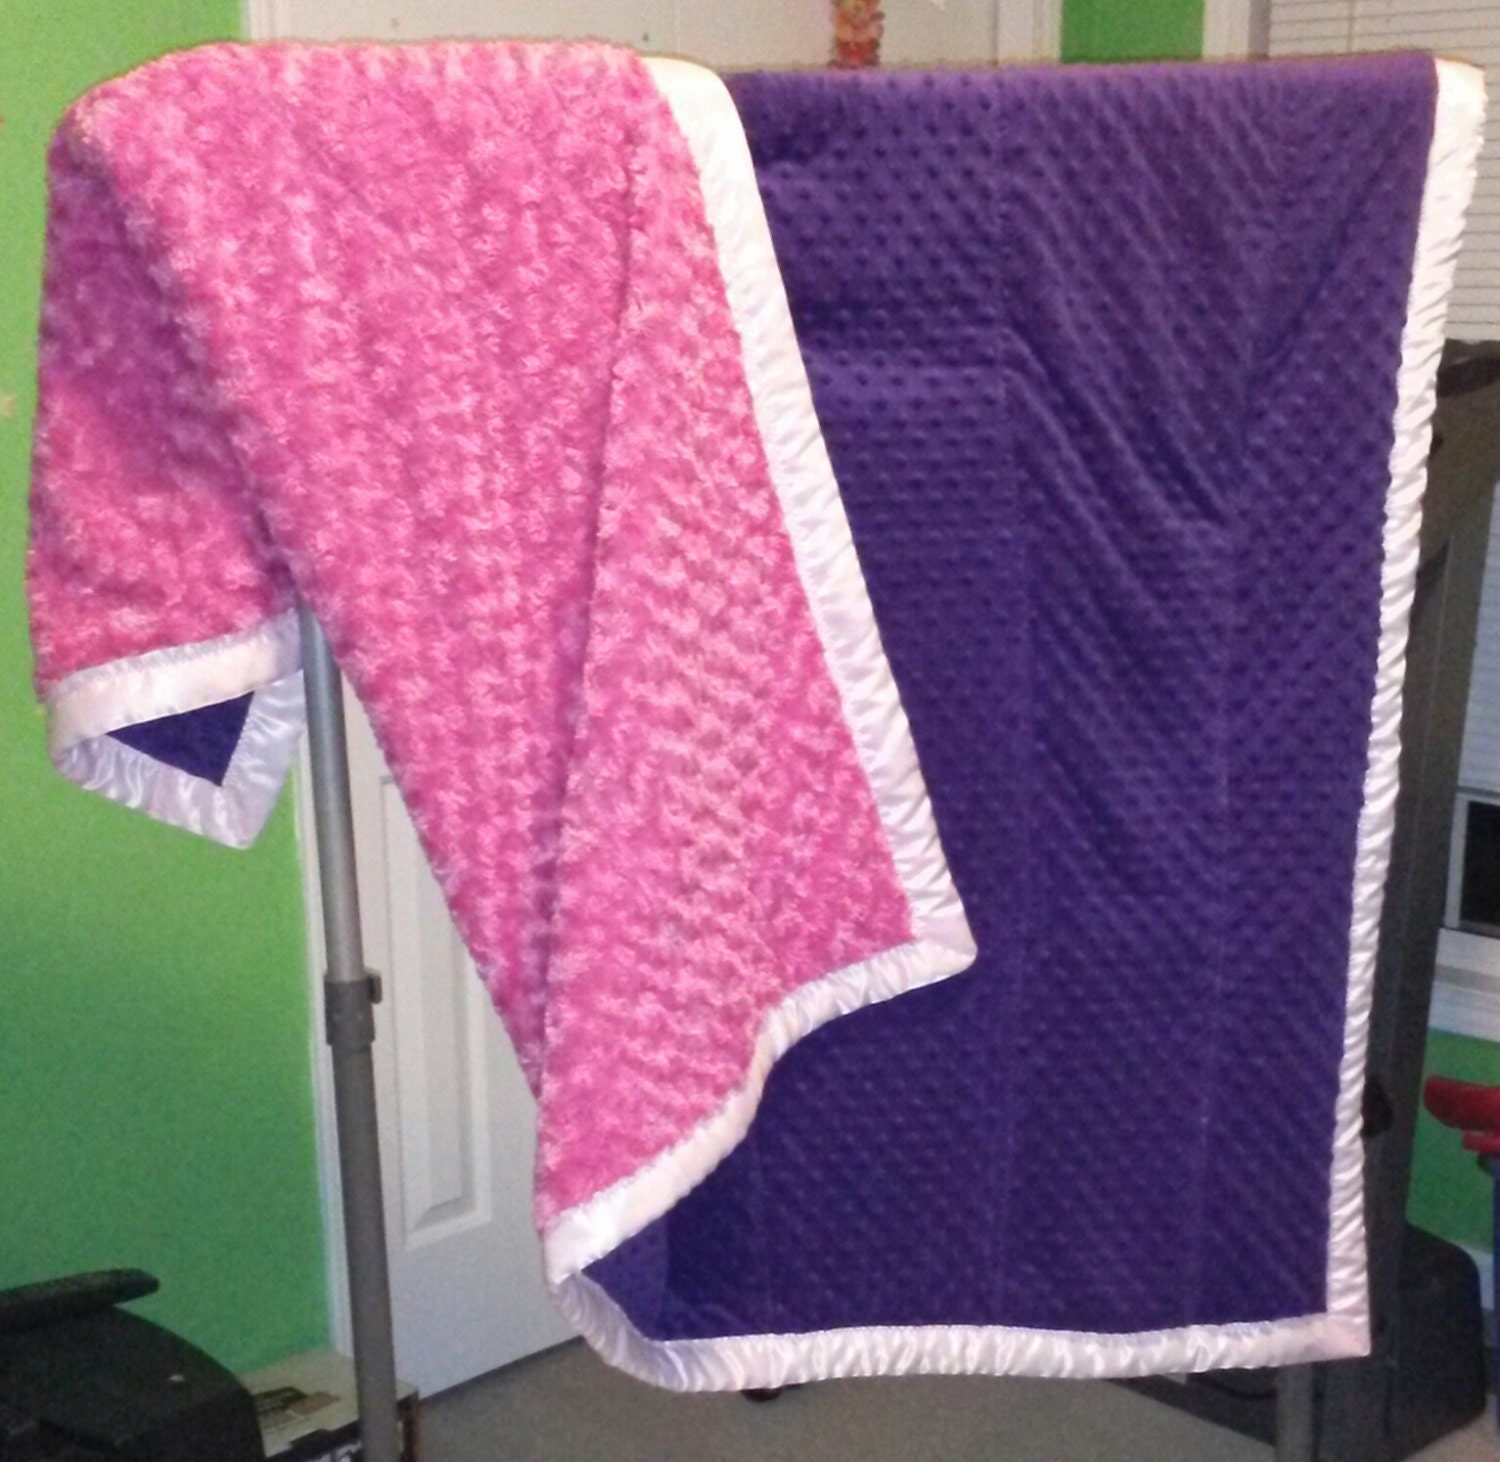 Dark Purple Bright Pink Warm Comfy Cozy Fleecy Blanket W